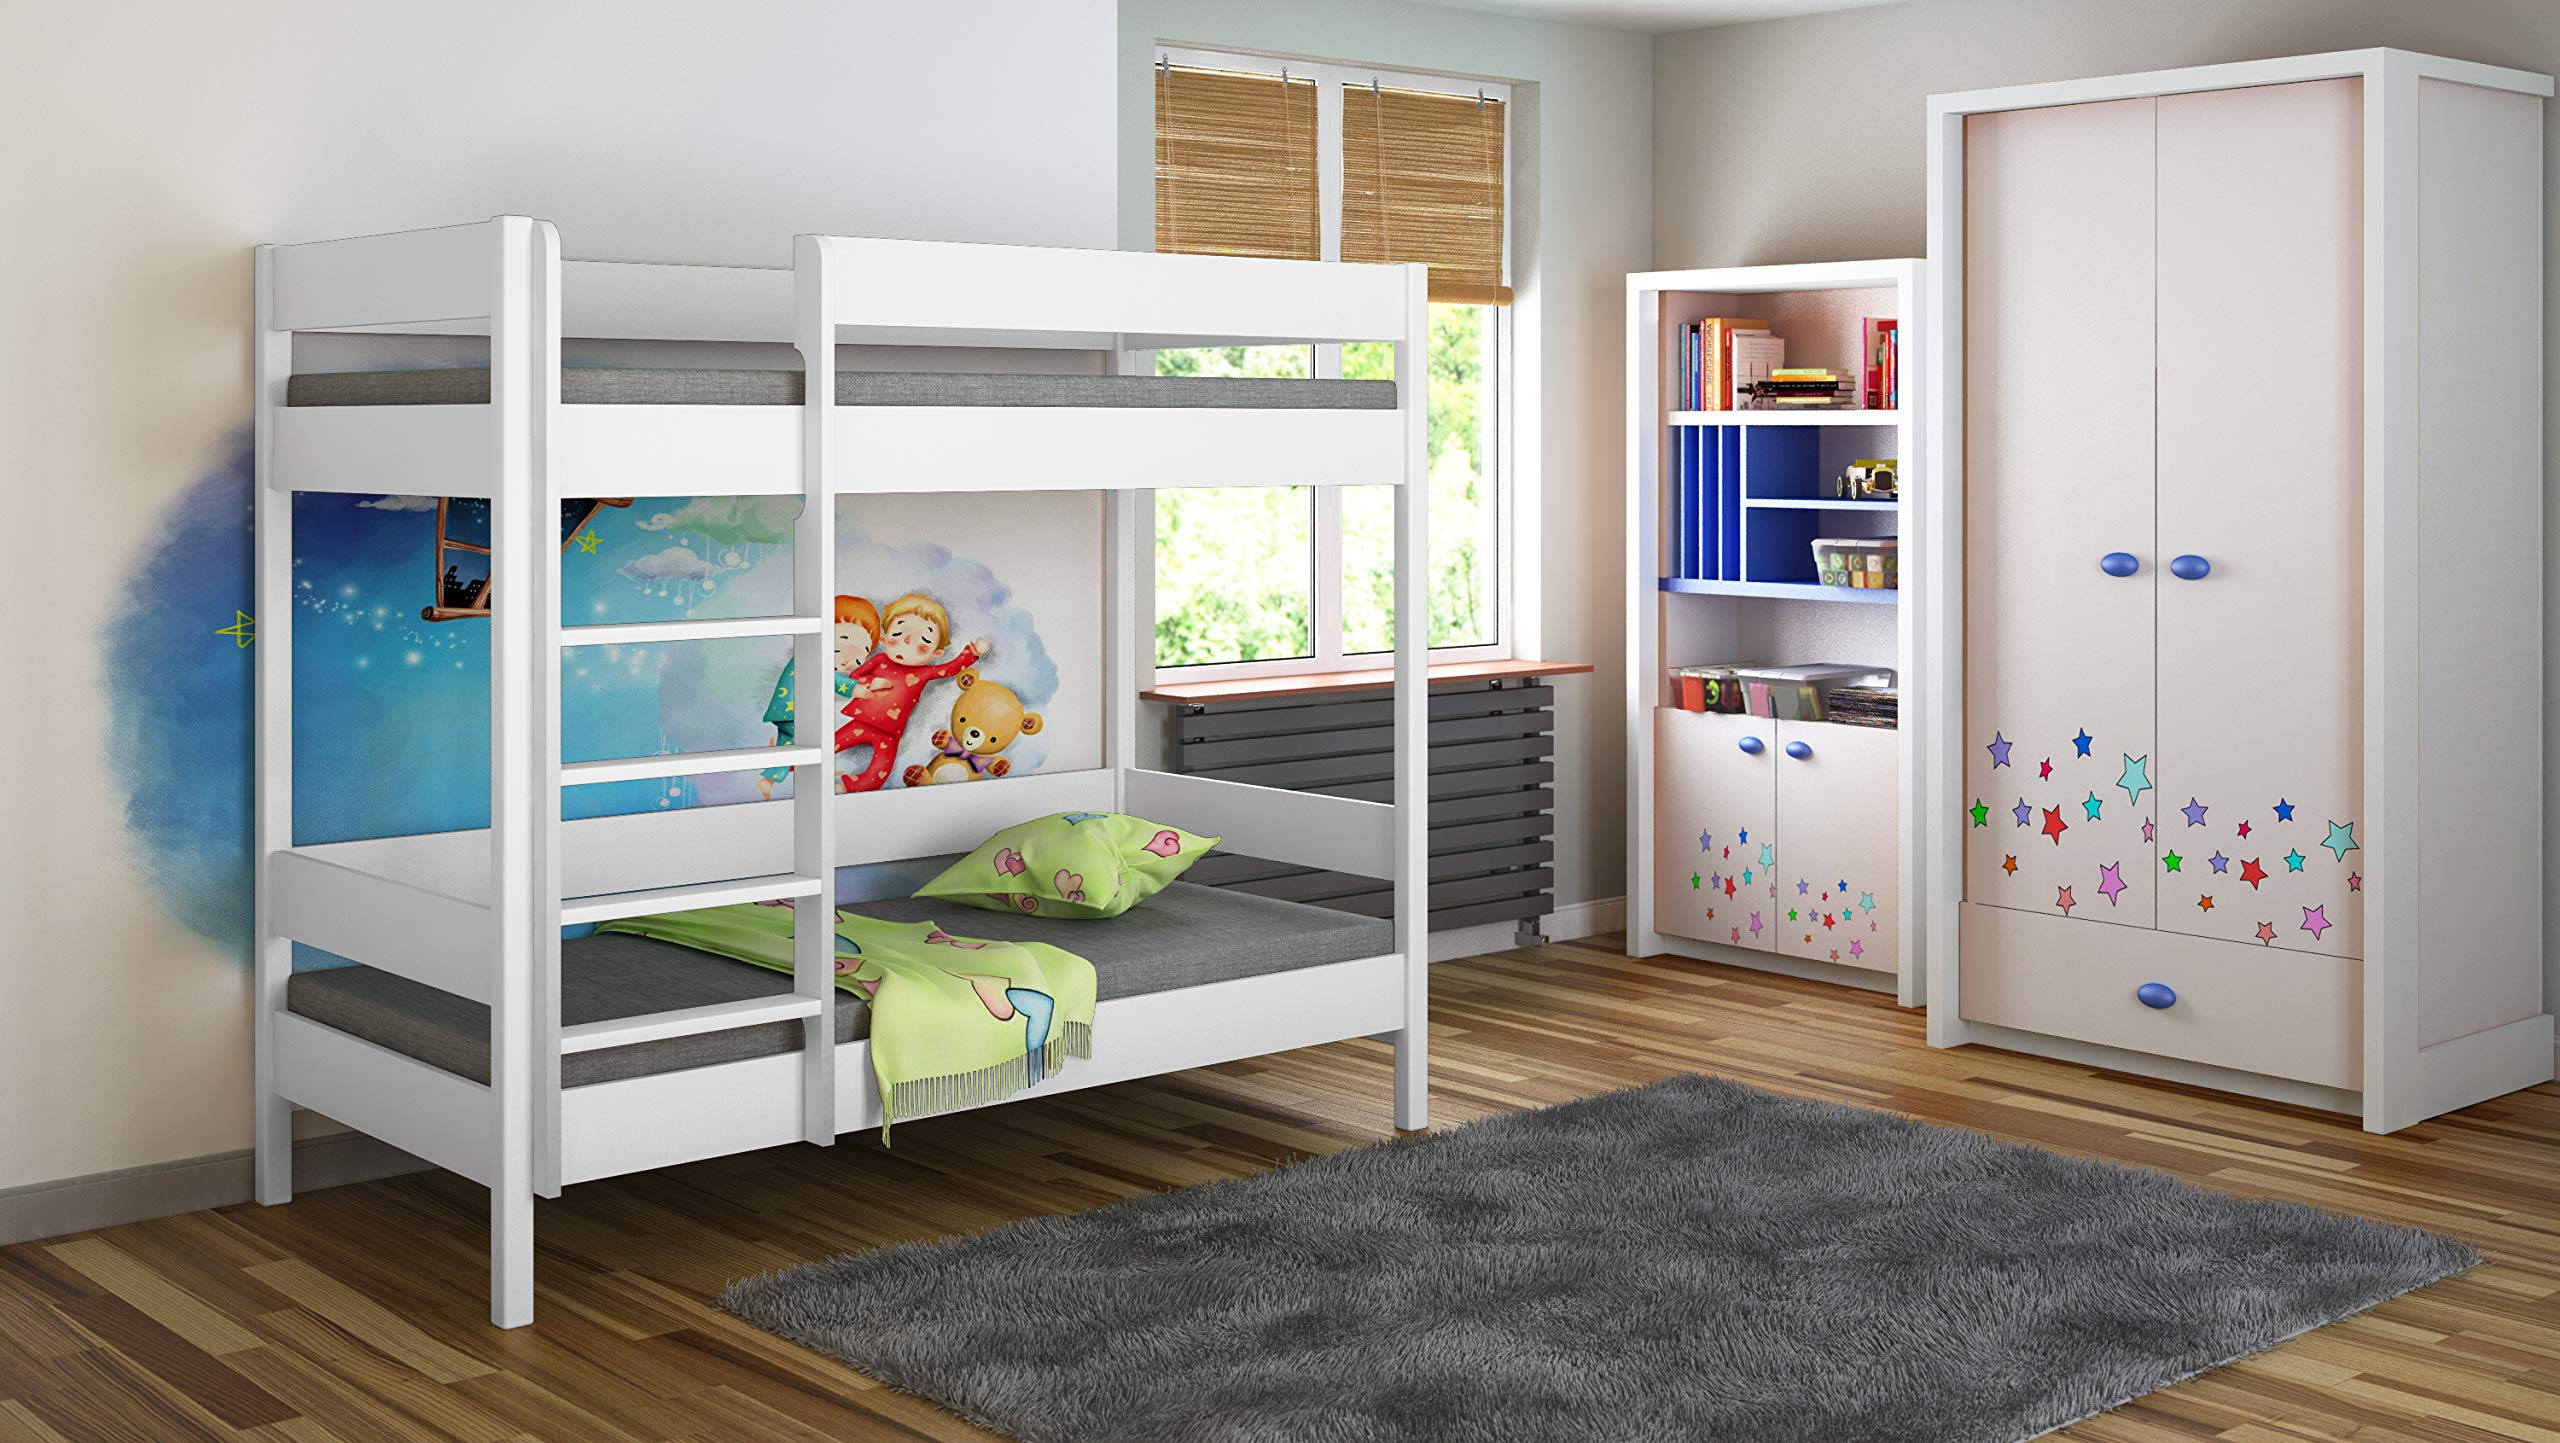 Bunk Beds - Kids Children Juniors Single with 2 Foam Mattress but No Drawers (160x80, White) Children's Beds Home Bed with barriers internal dimensions: 140x70x160, 160x80x160, 180x80x160, 180x90x160, 200x90x160. External dimensions: 147x77x160, 167x87x160, 187x87x160, 187x97x160, 207x97x160 Bunk Bed with access from the - Front (D-1), Universal bed entrance - left or right side. 1